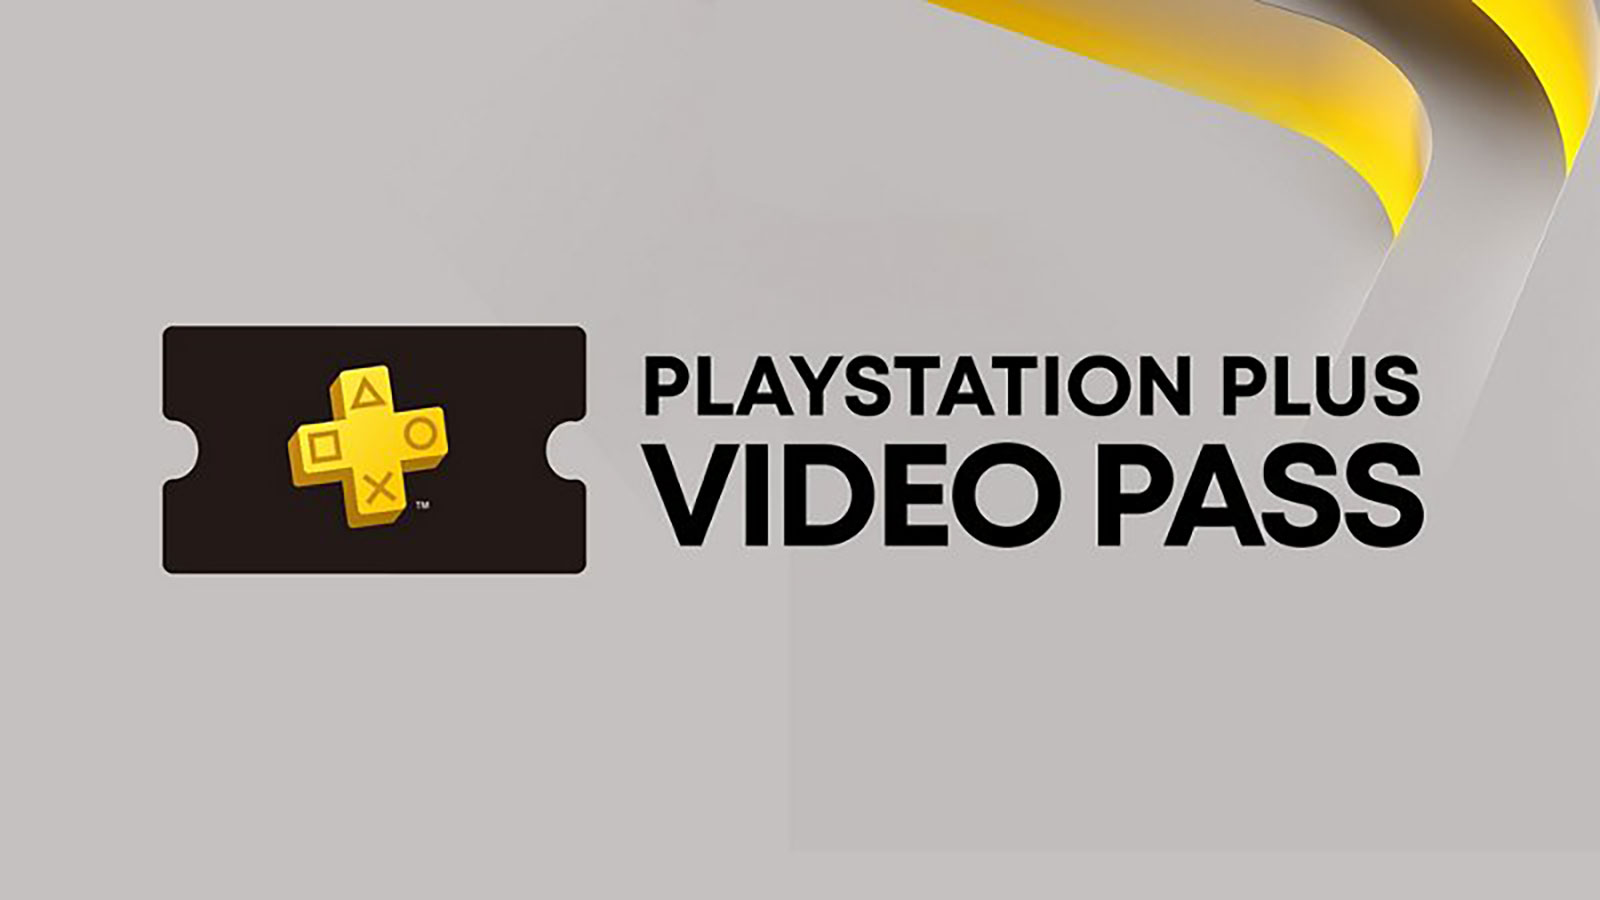 PlayStation Plus could soon include a video service